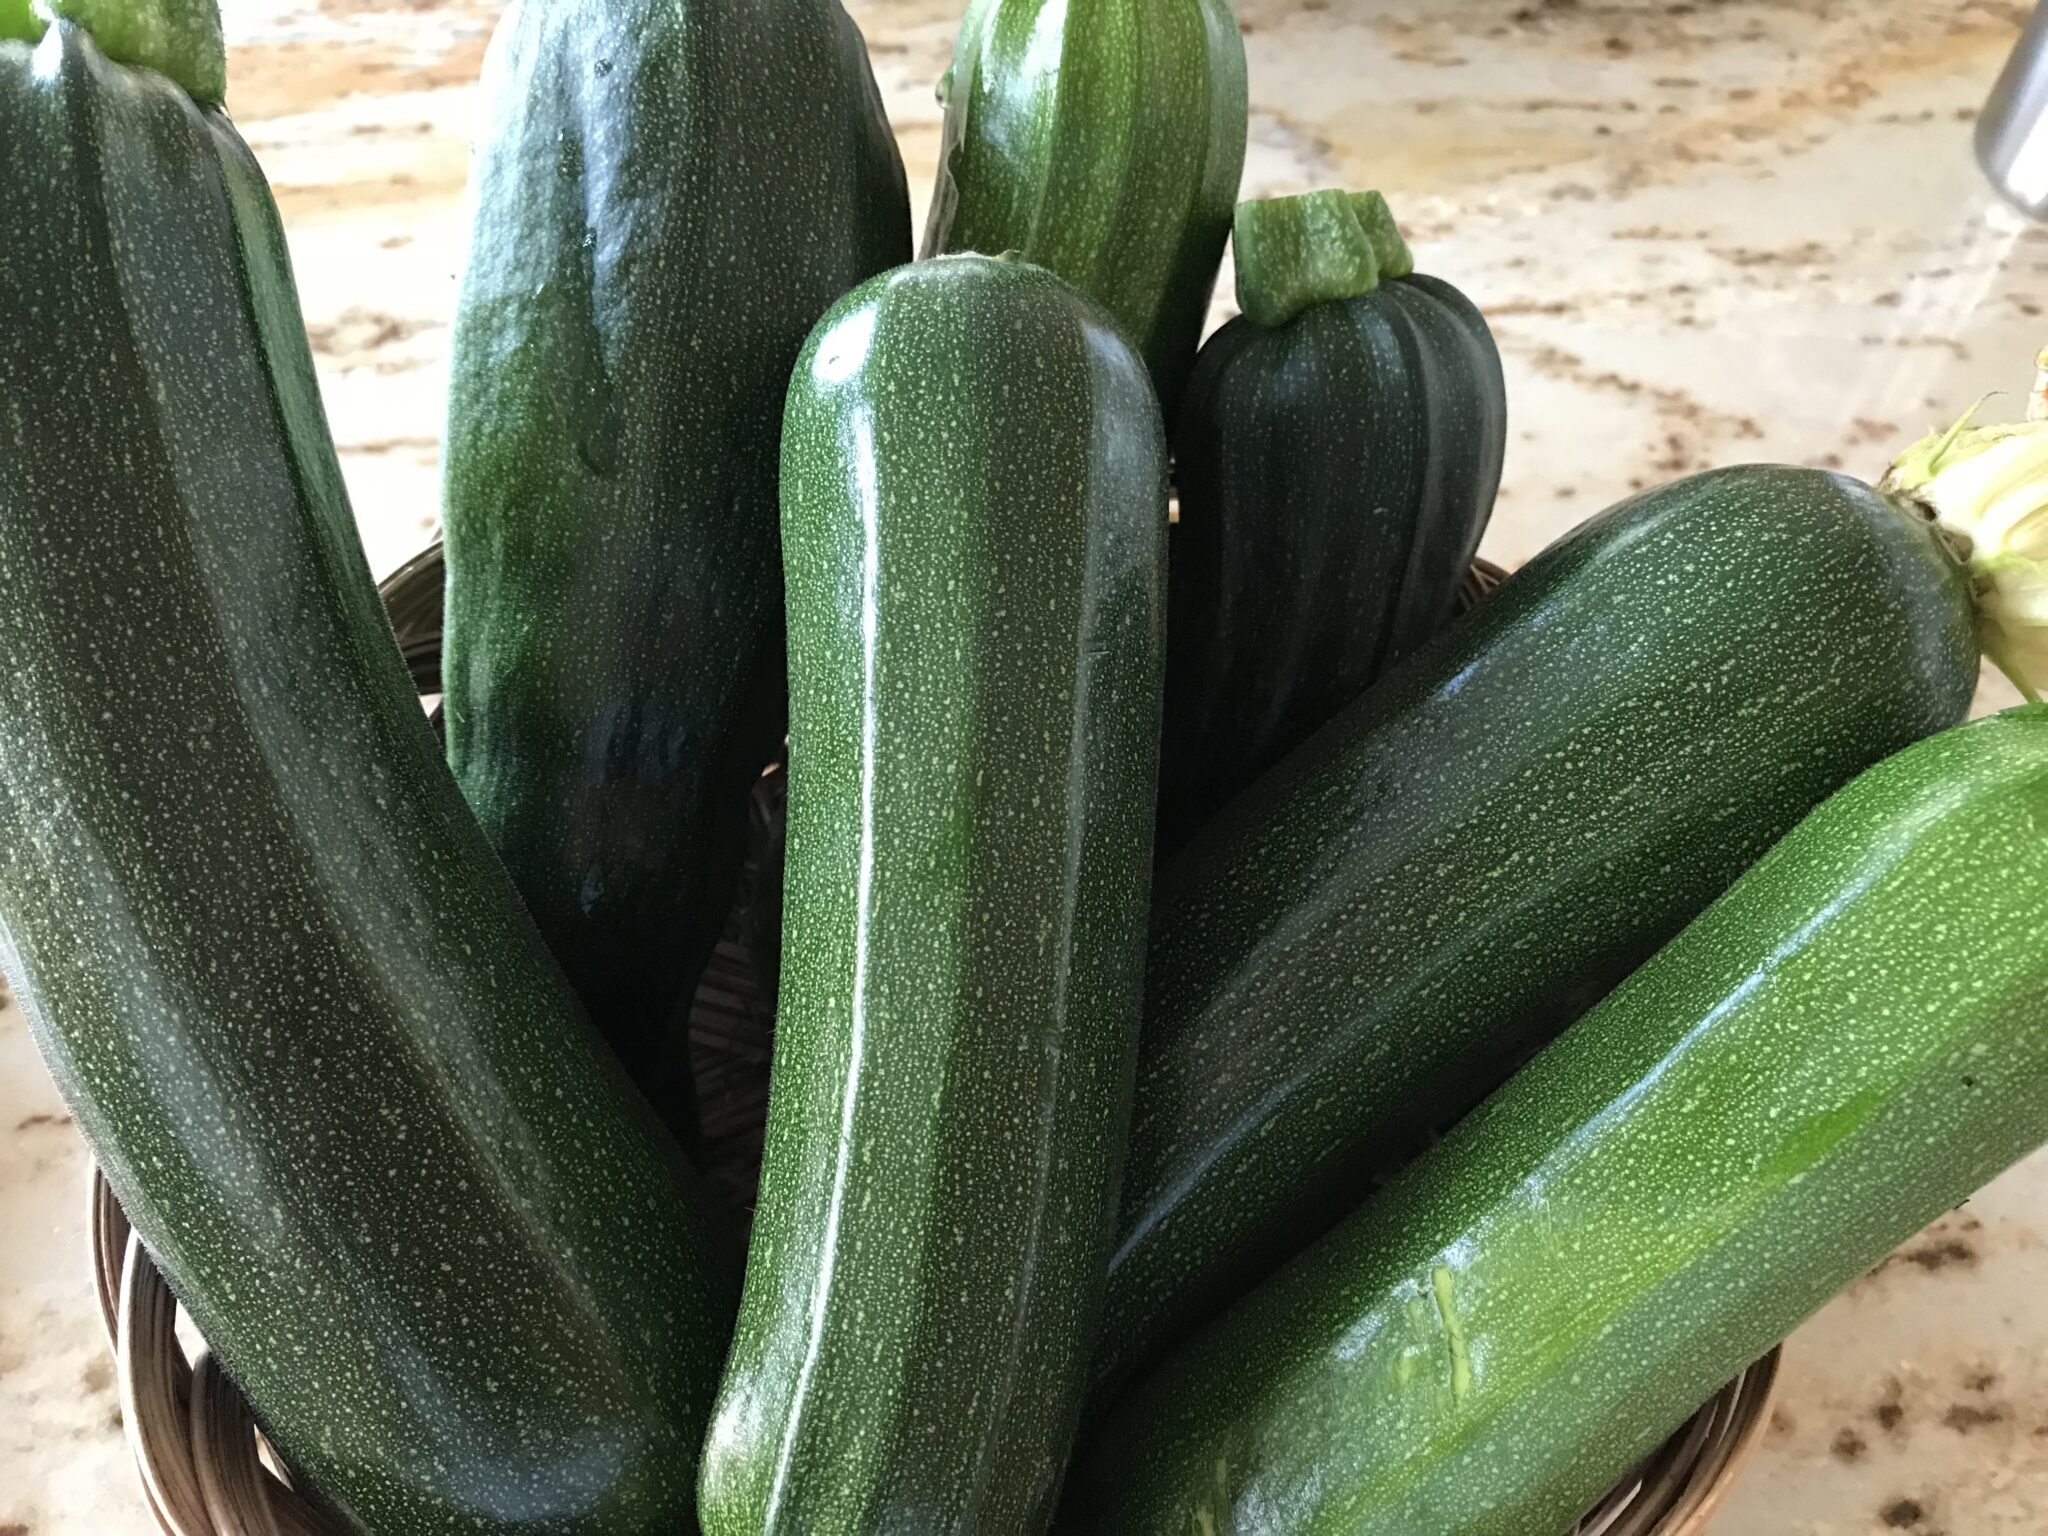 Let The Zucchini Recipes Begin… Again!